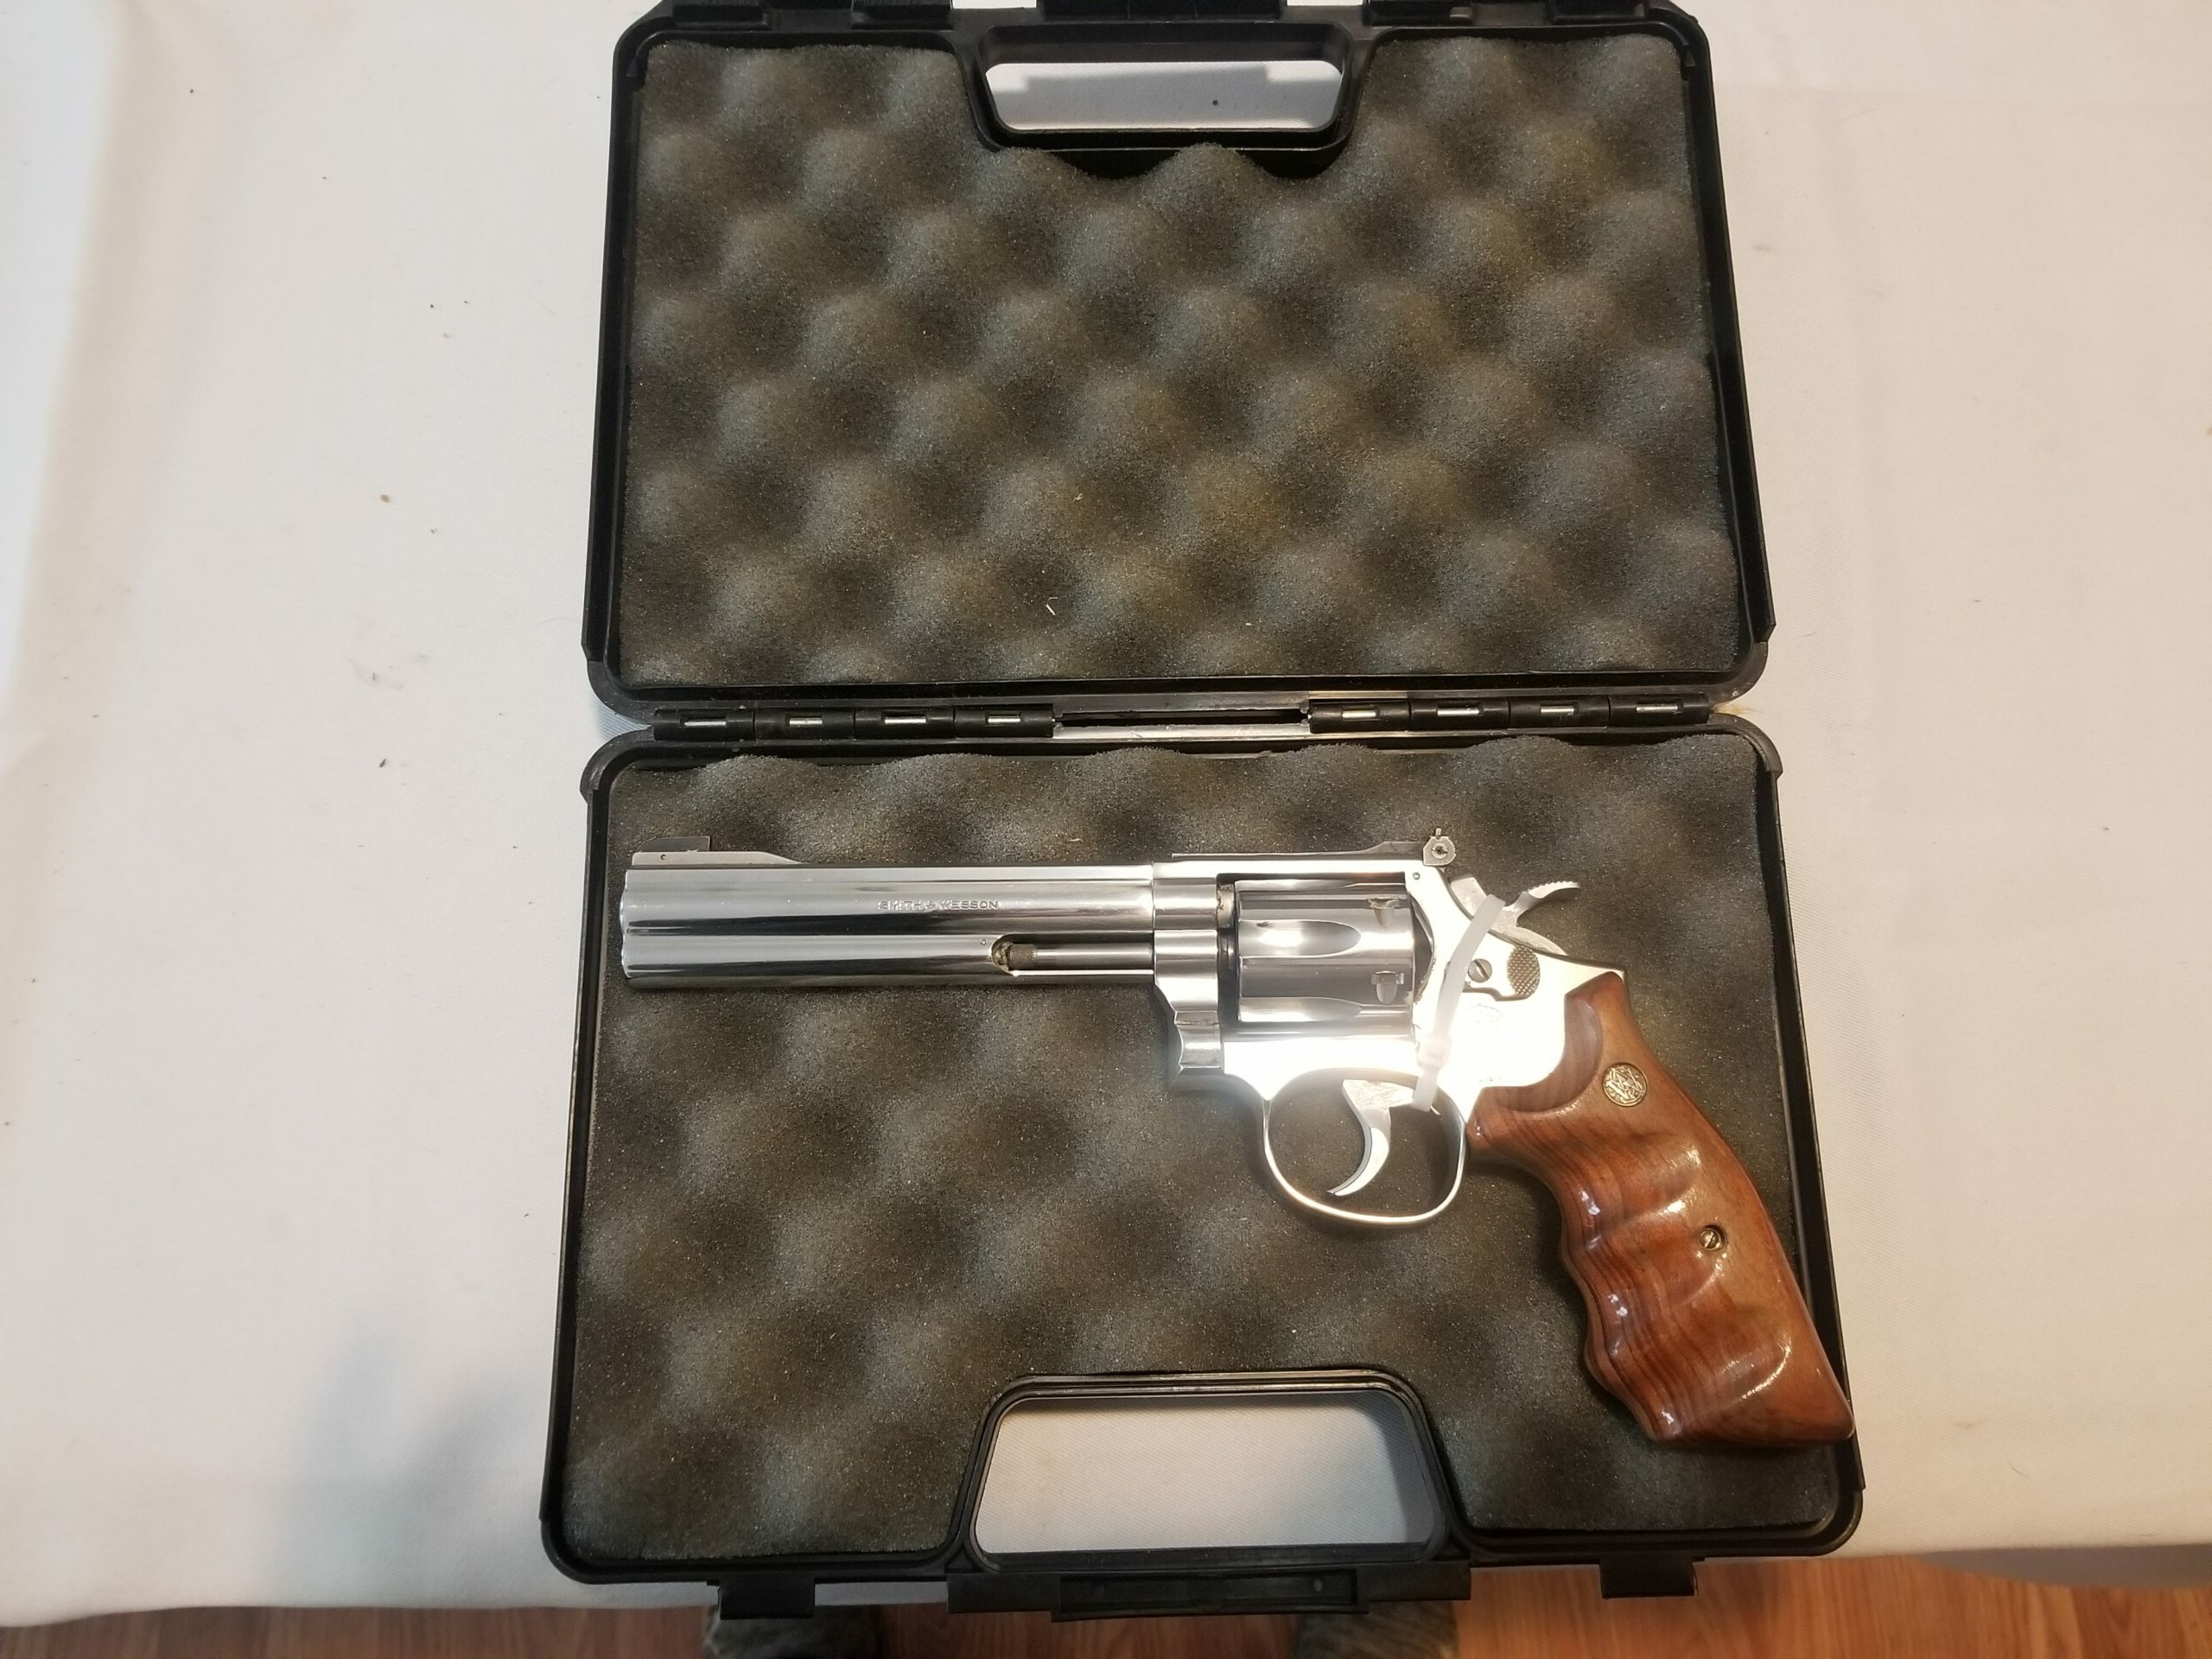 Smith & Wesson Model 617 .22 LR Revolver